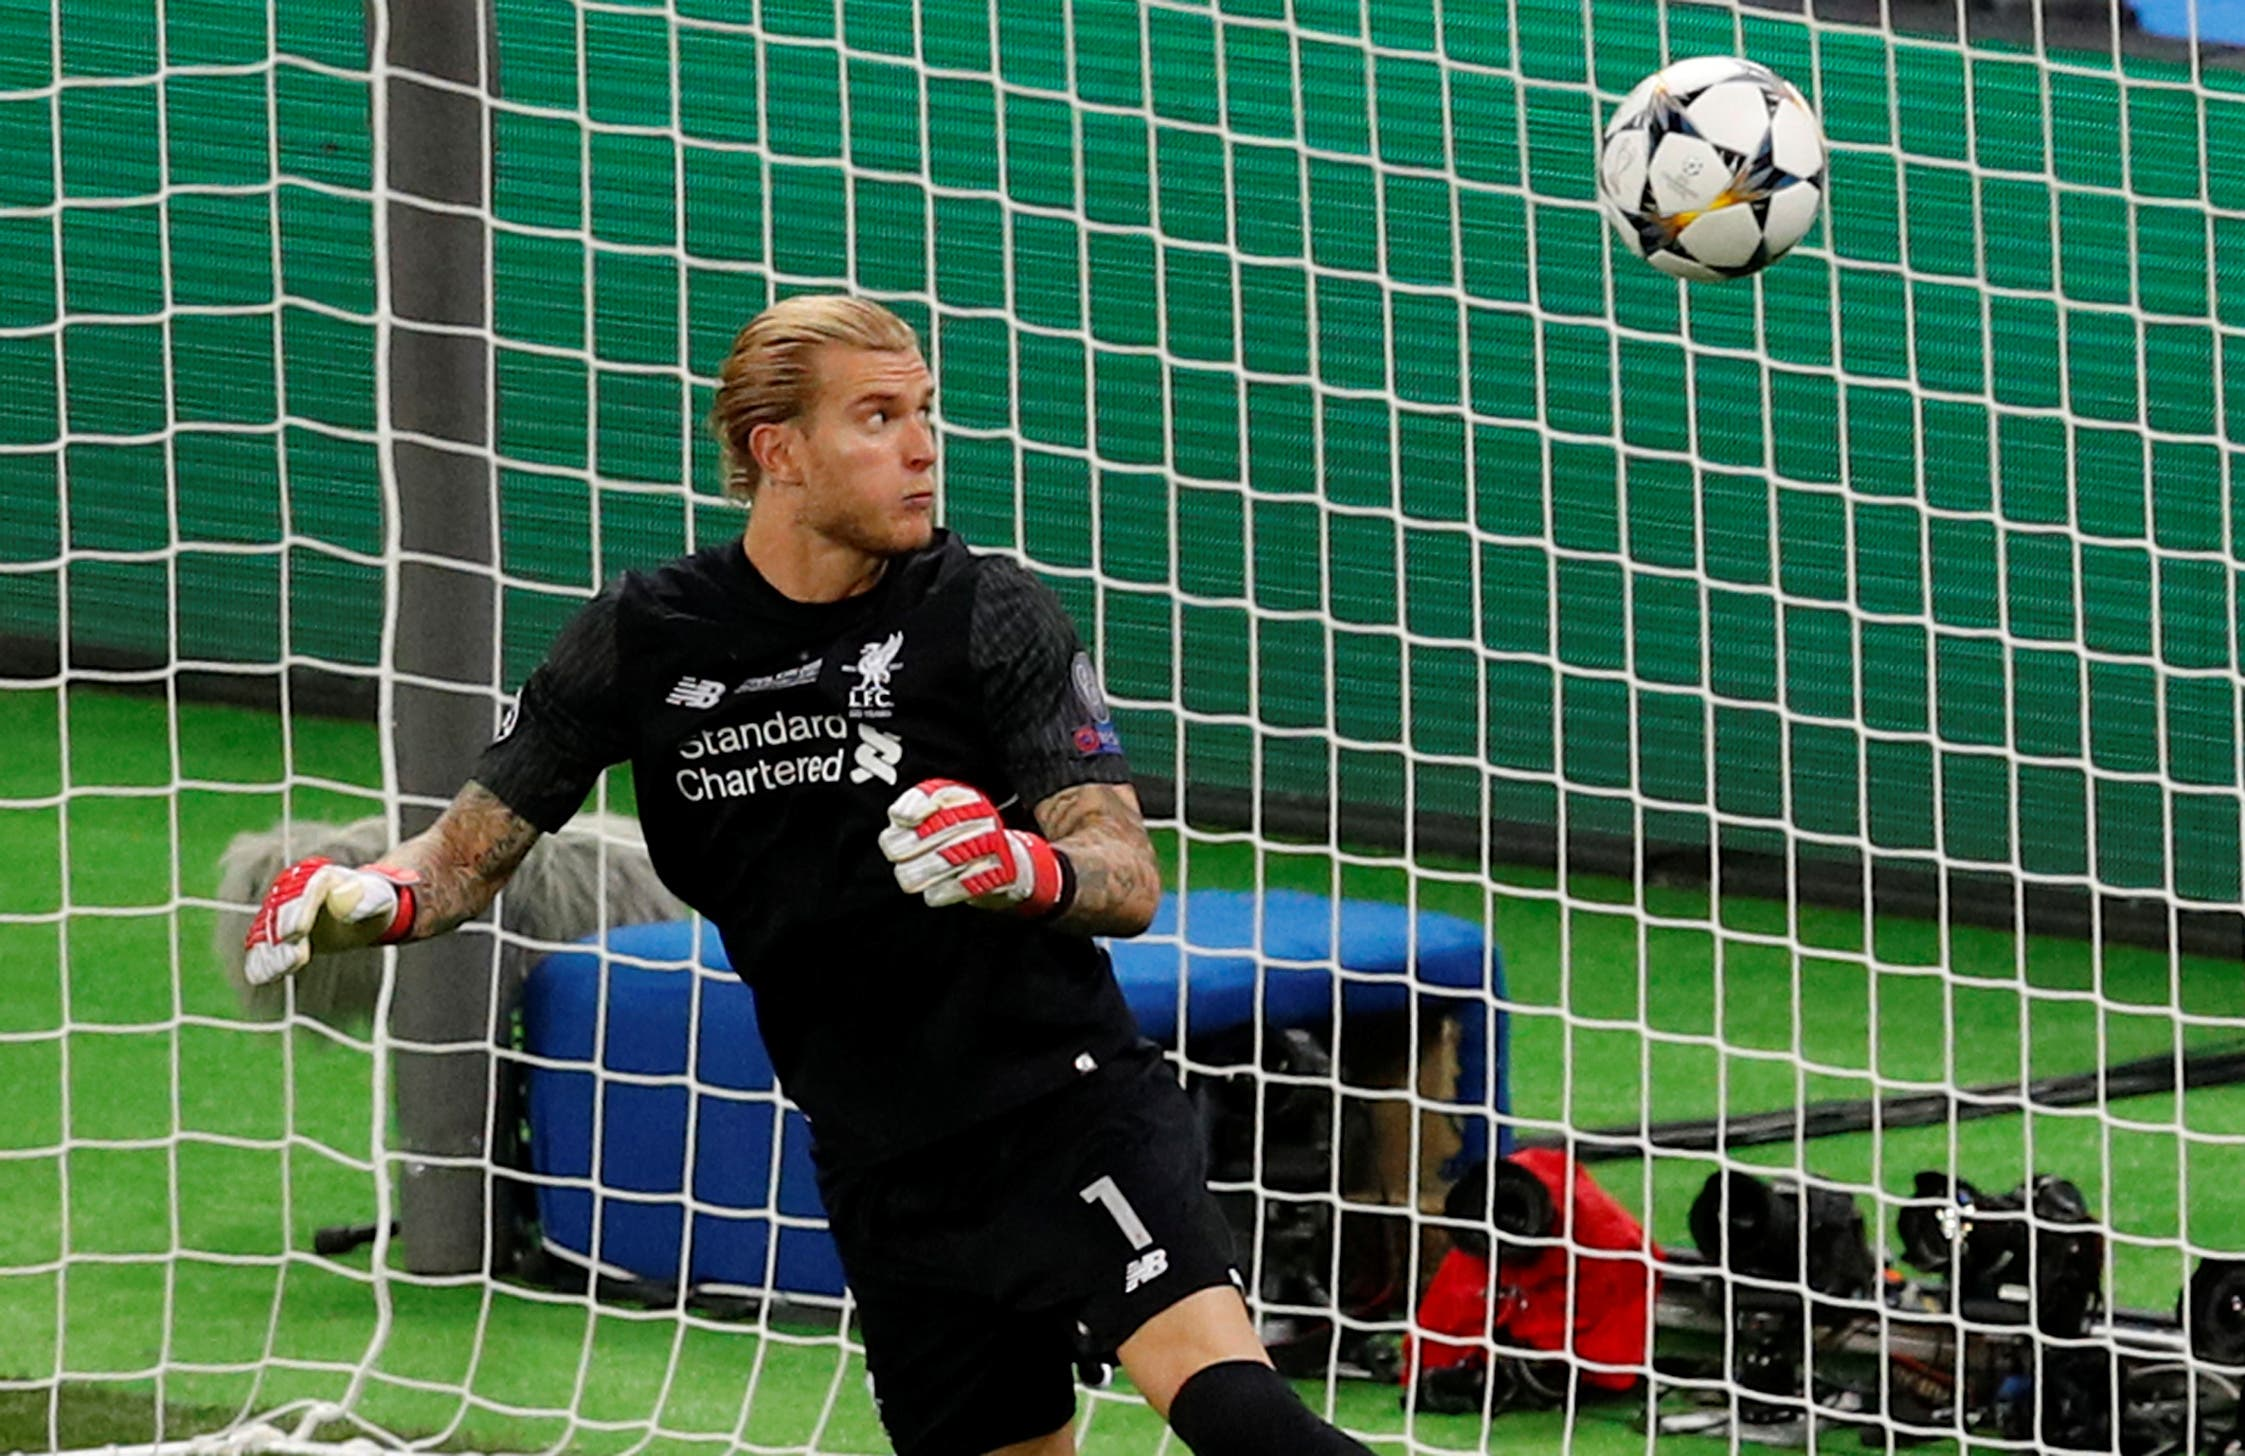 Karius had undergone several tests at Mass Gen which confimed he was suffering from a concussion. (Reuters)